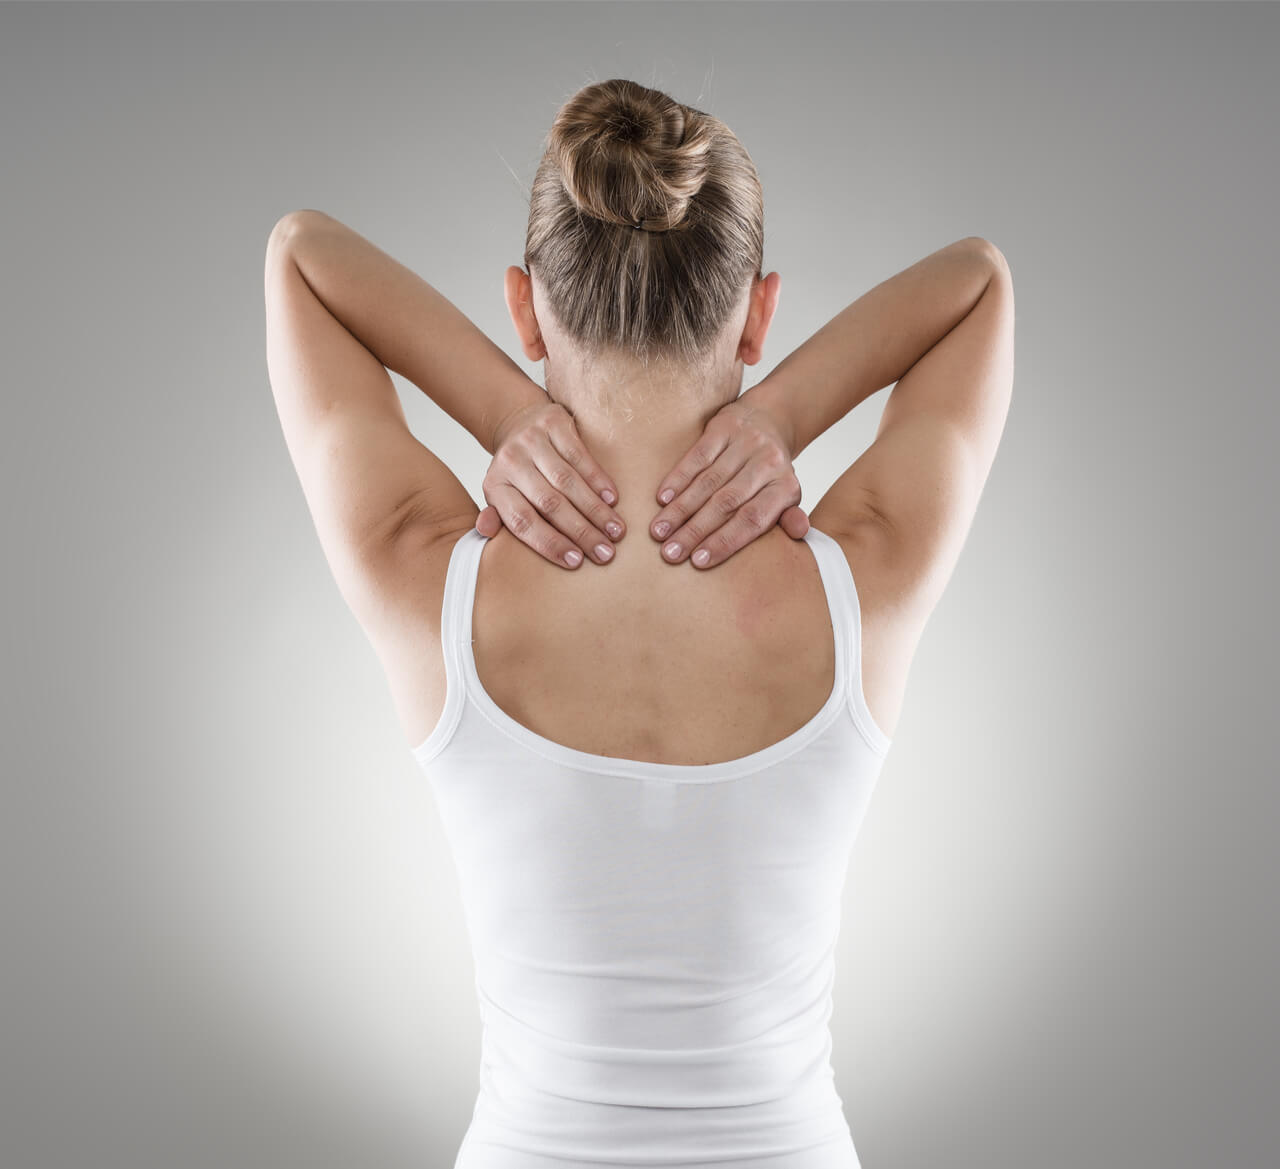 Exercises for Scoliosis and How to Do Them